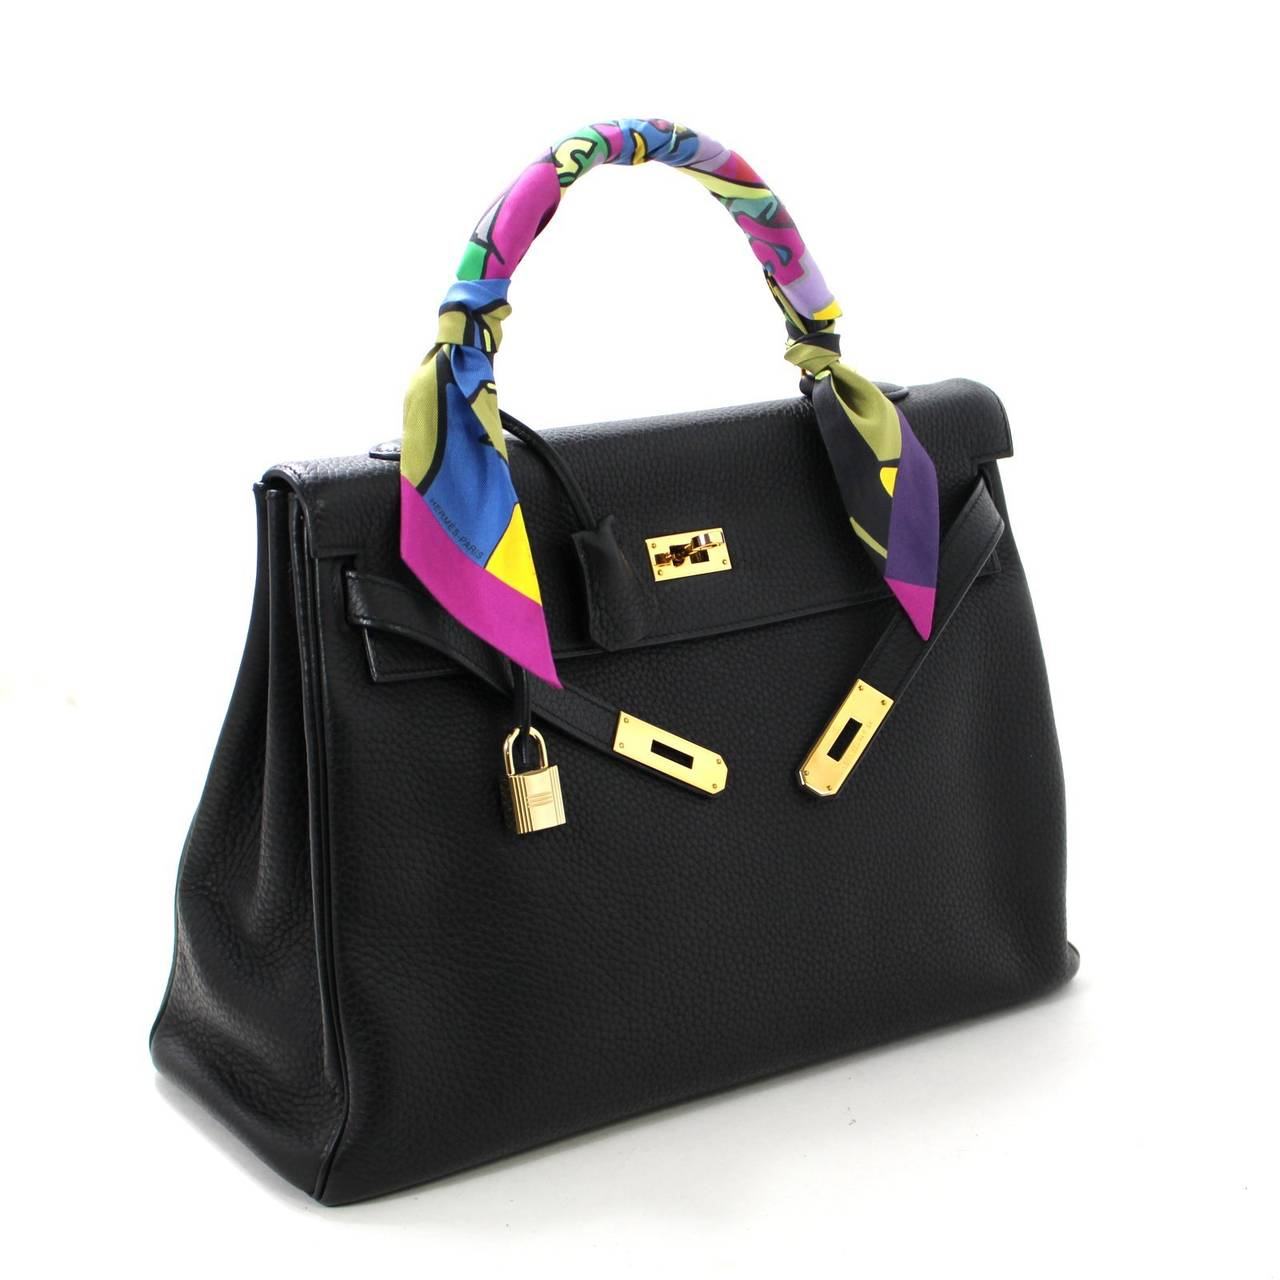 HERMES Kelly Bag- Black Clemence Leather with  Gold, 35 cm 3